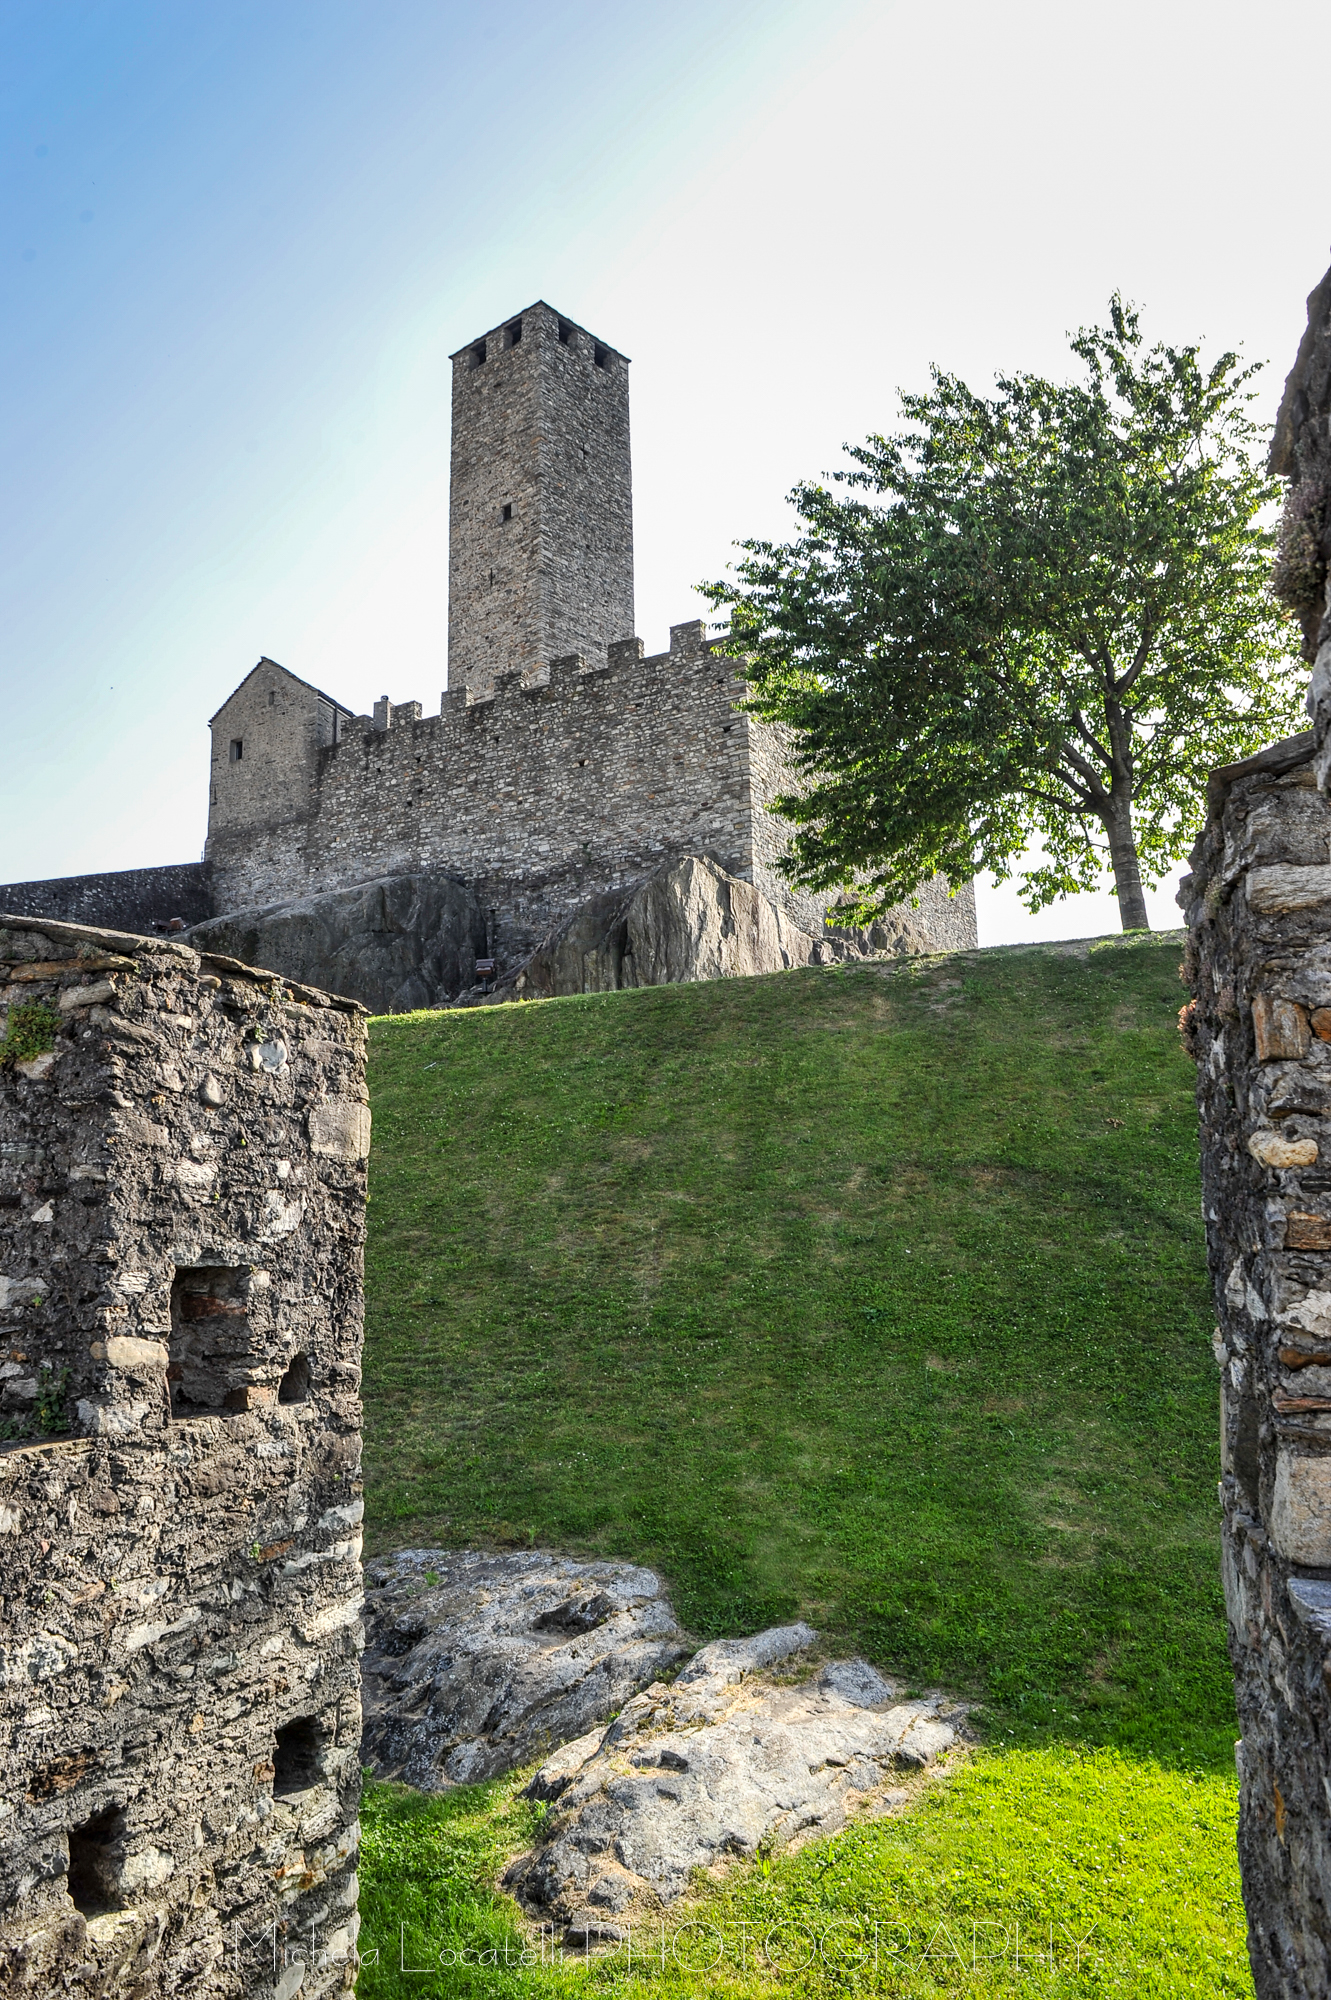 Bellinzona Architecture,Bellinzona,Castle,Places,Switzerland,paesaggi,ticino,